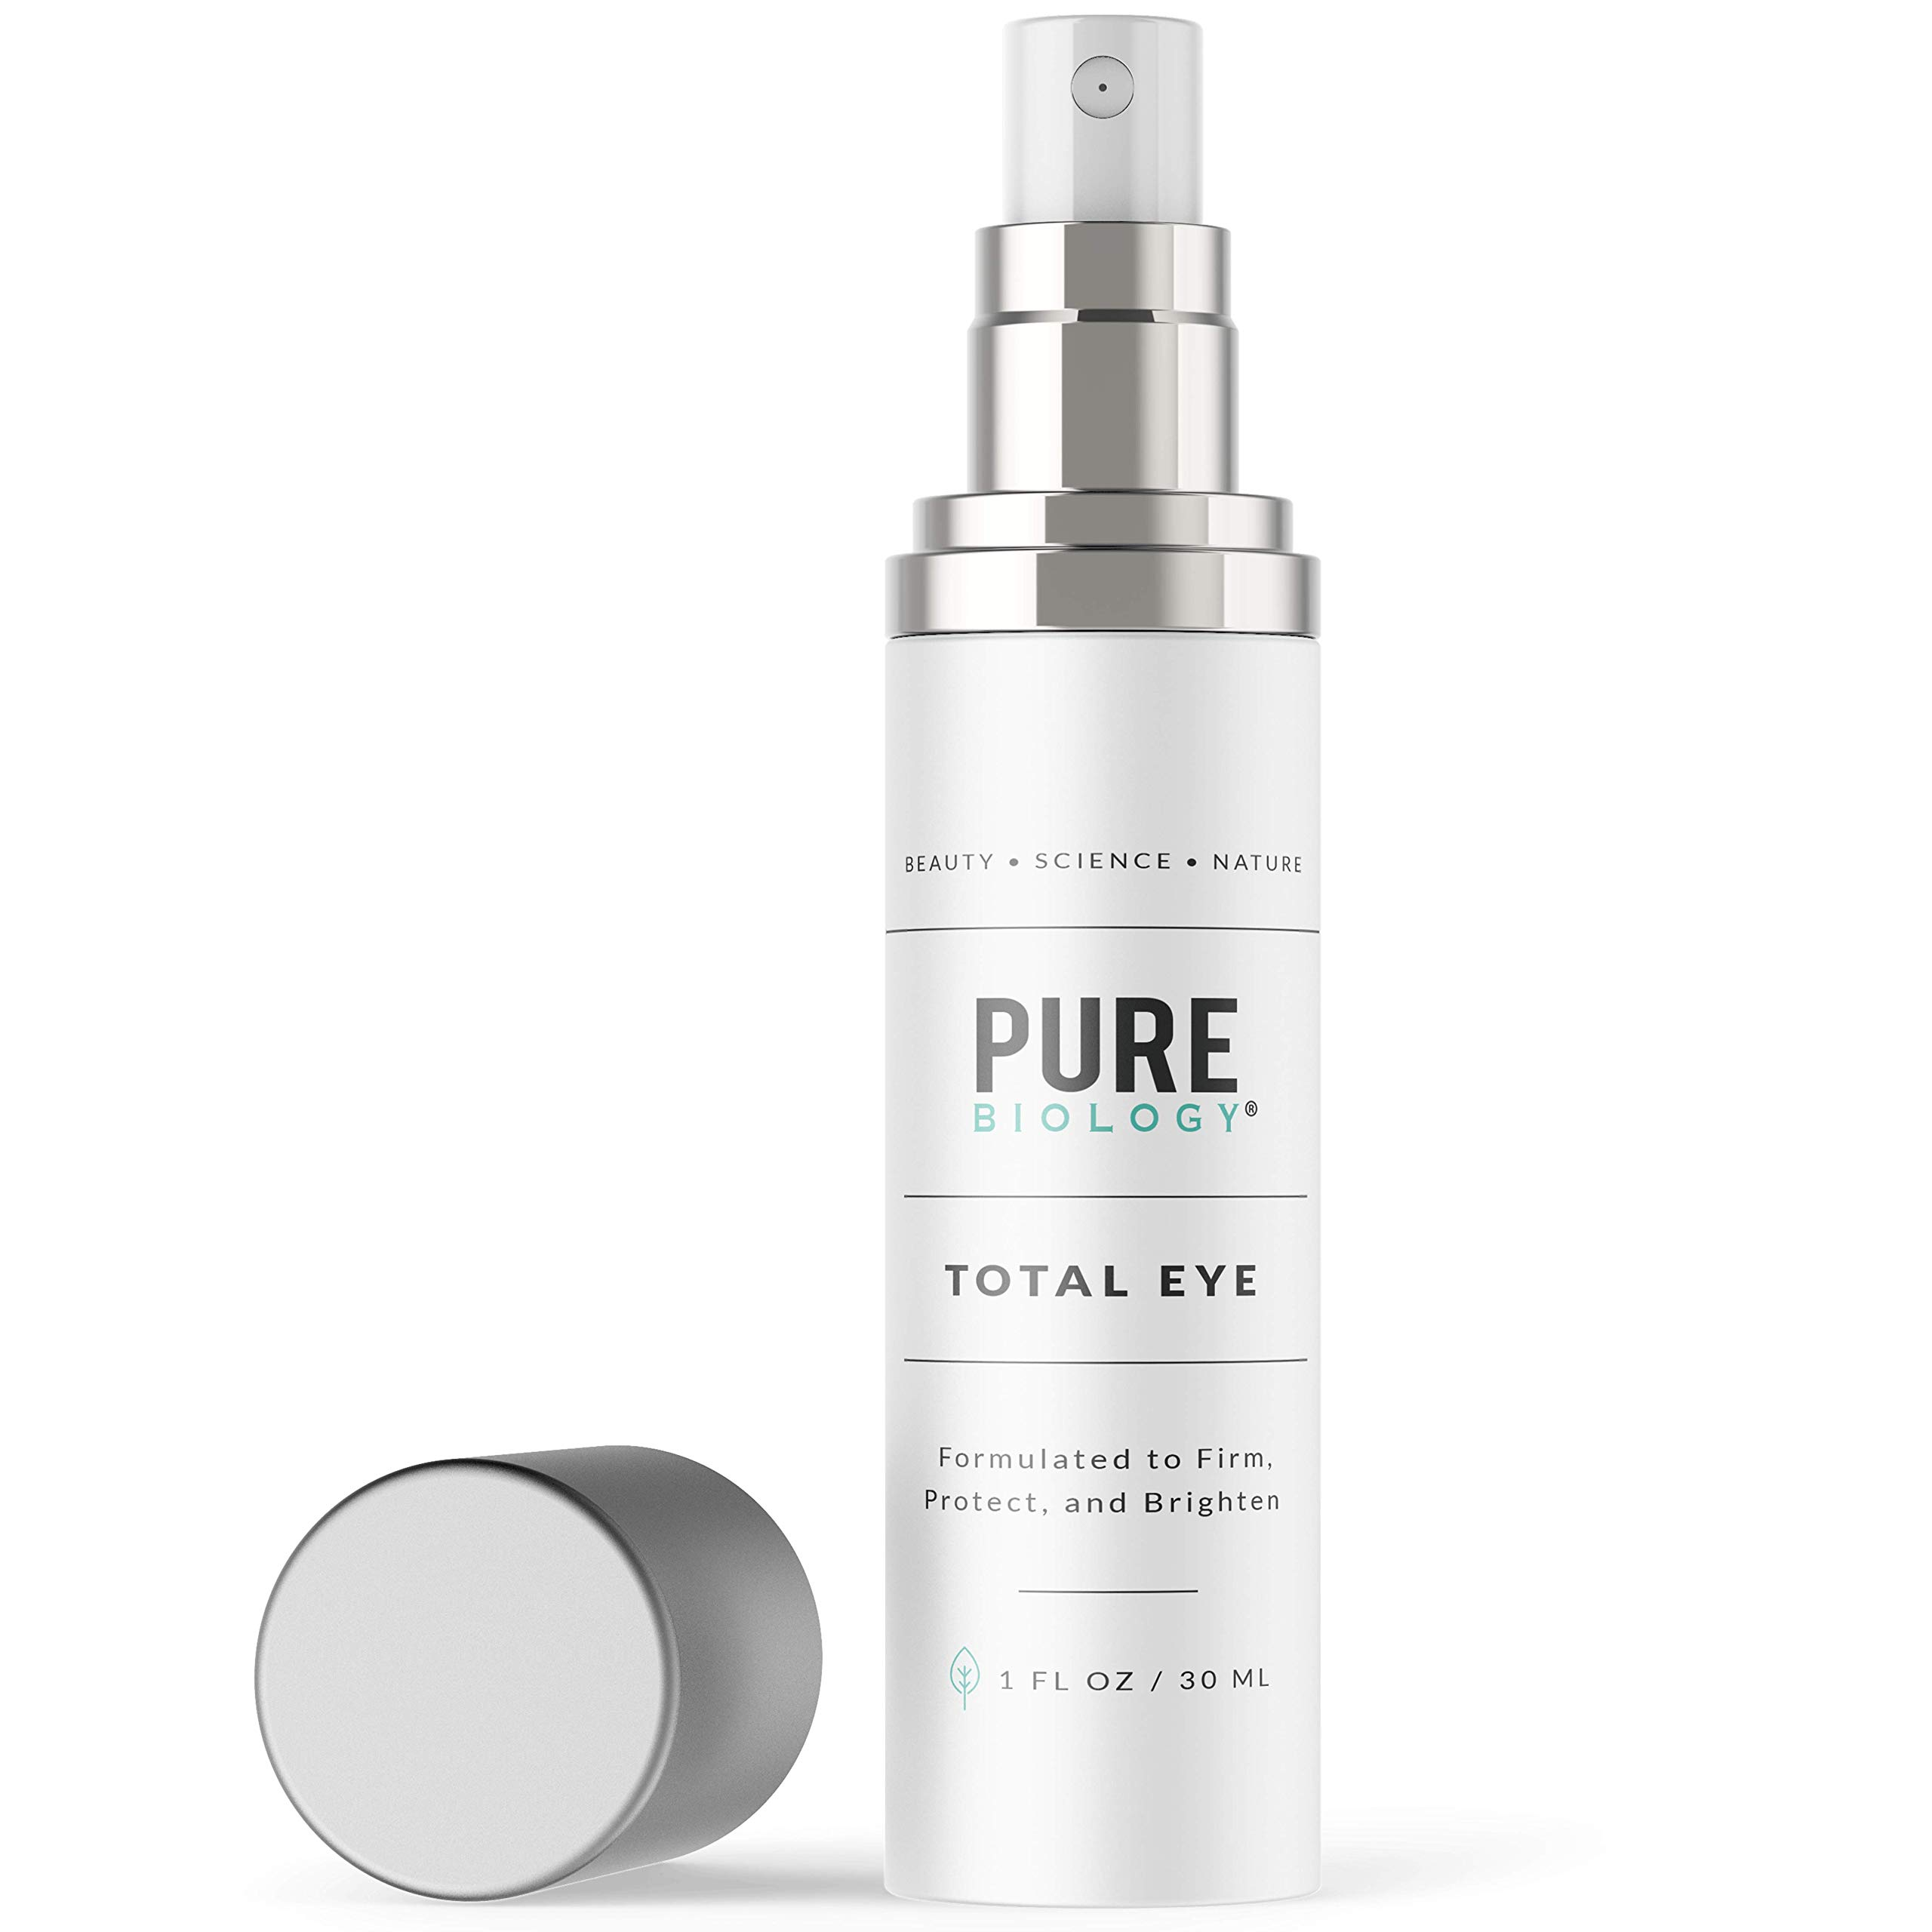 Premium Total Eye Cream Serum with Vitamin C + E, Hyaluronic Acid & Anti Aging Complexes to Reduce Dark Circles, Puffiness, Under Eye Bags, Wrinkles & Fine Lines for Men & Women, 1 OZ by Pure Biology